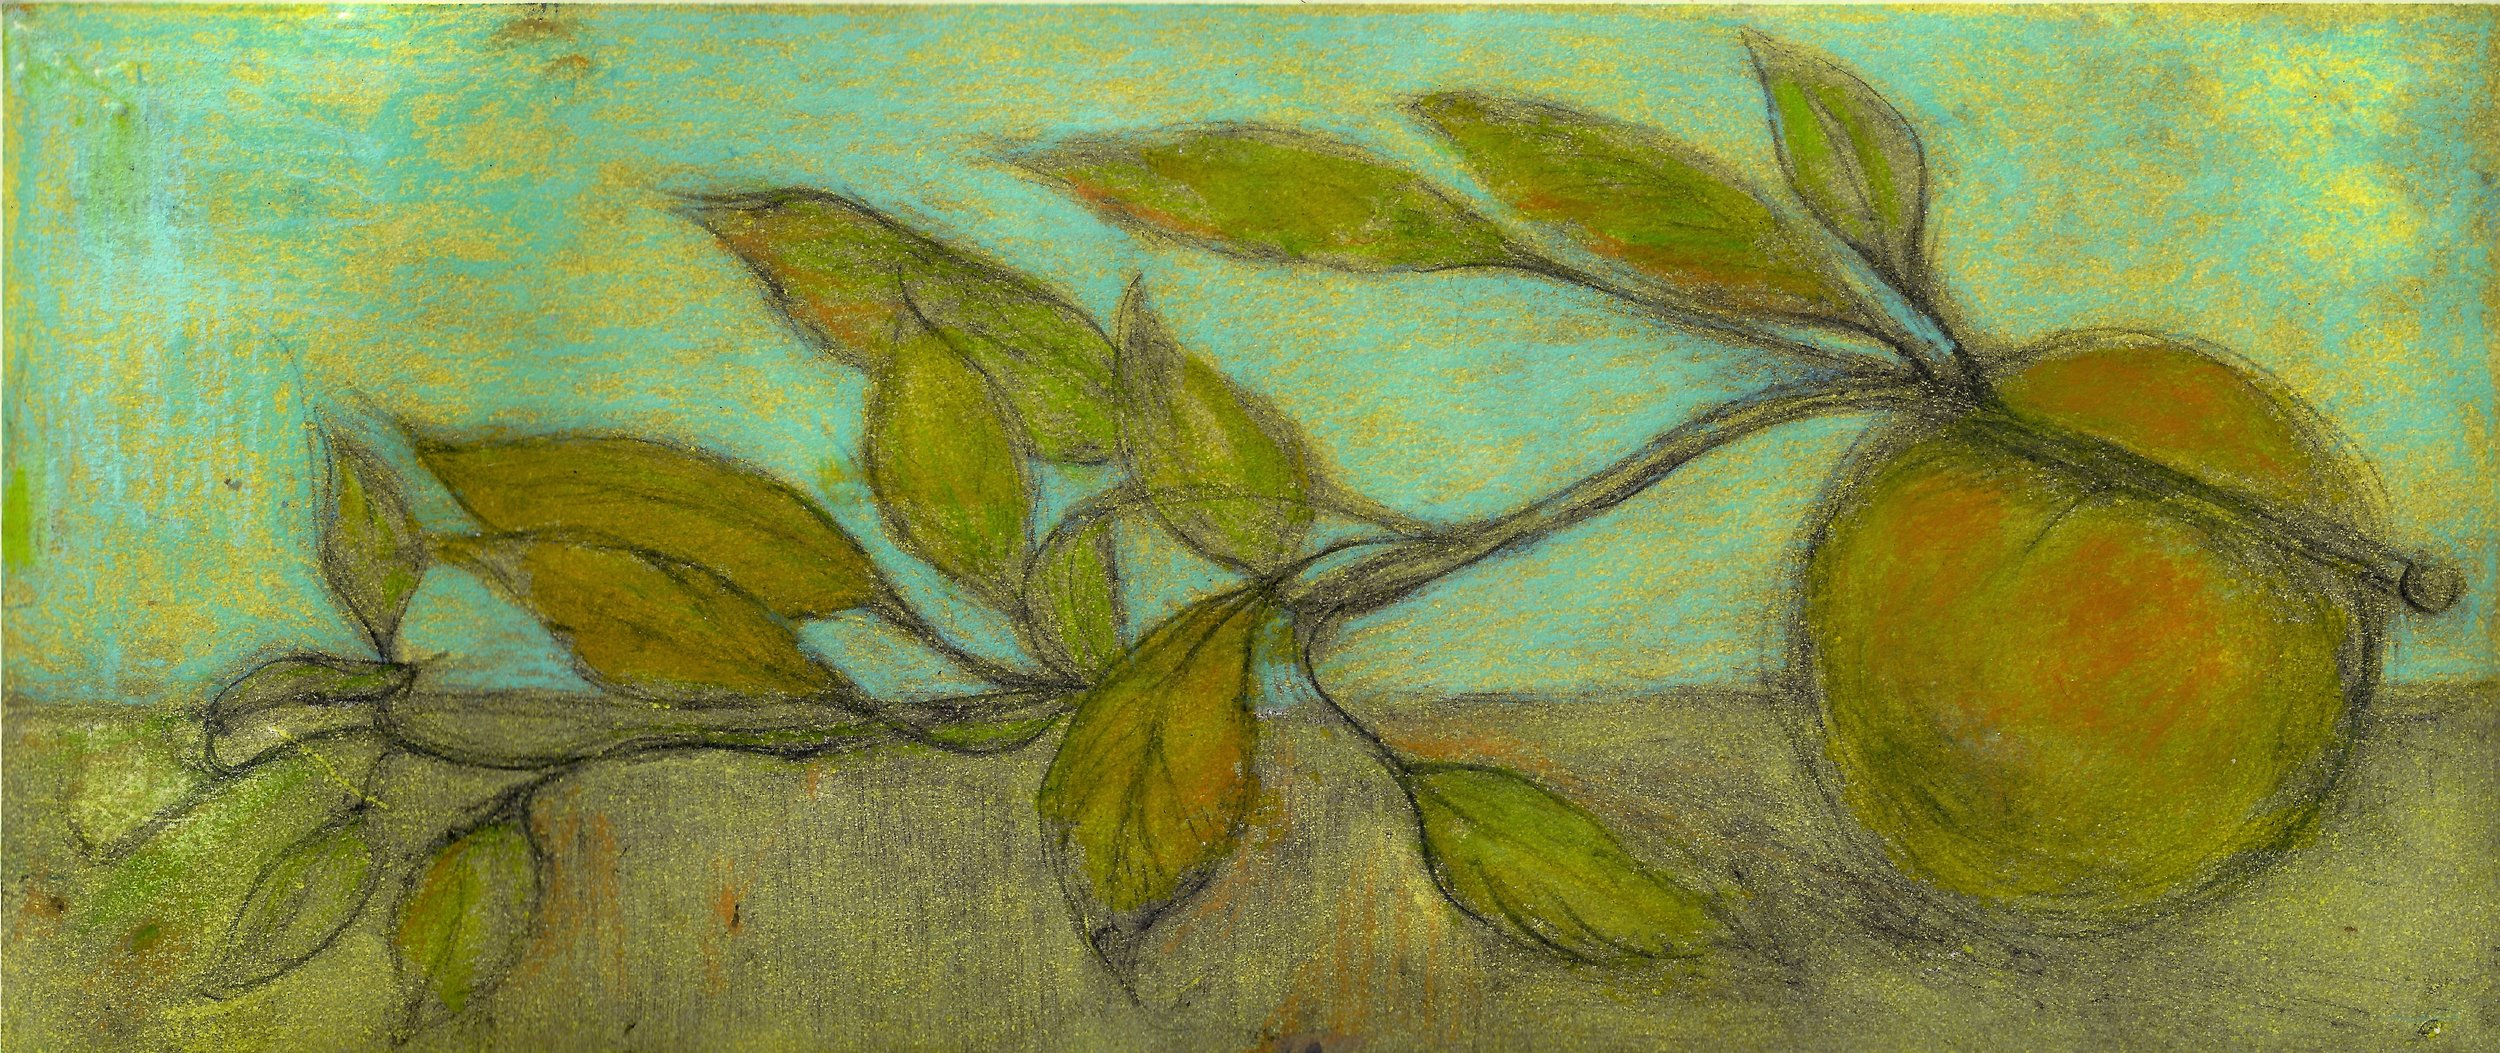 """detail of """"Quince/greens"""" 1/4 variable limited monoprint 2018"""